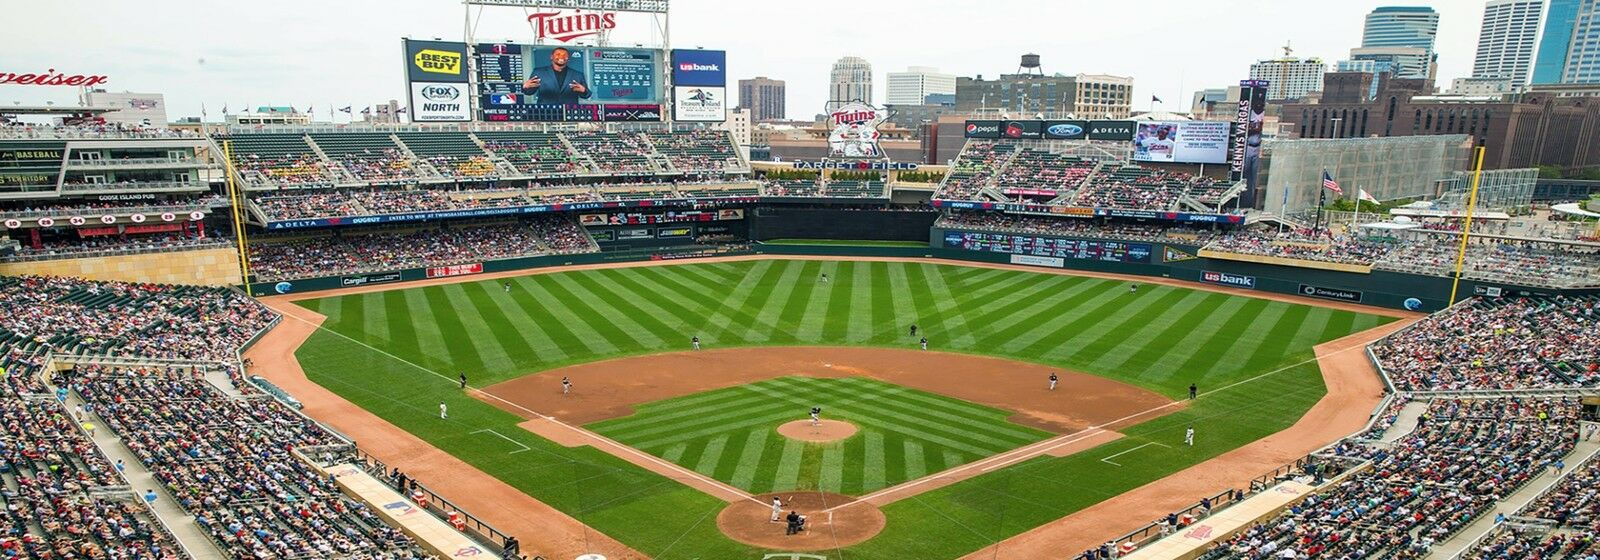 Cincinnati Reds at Minnesota Twins